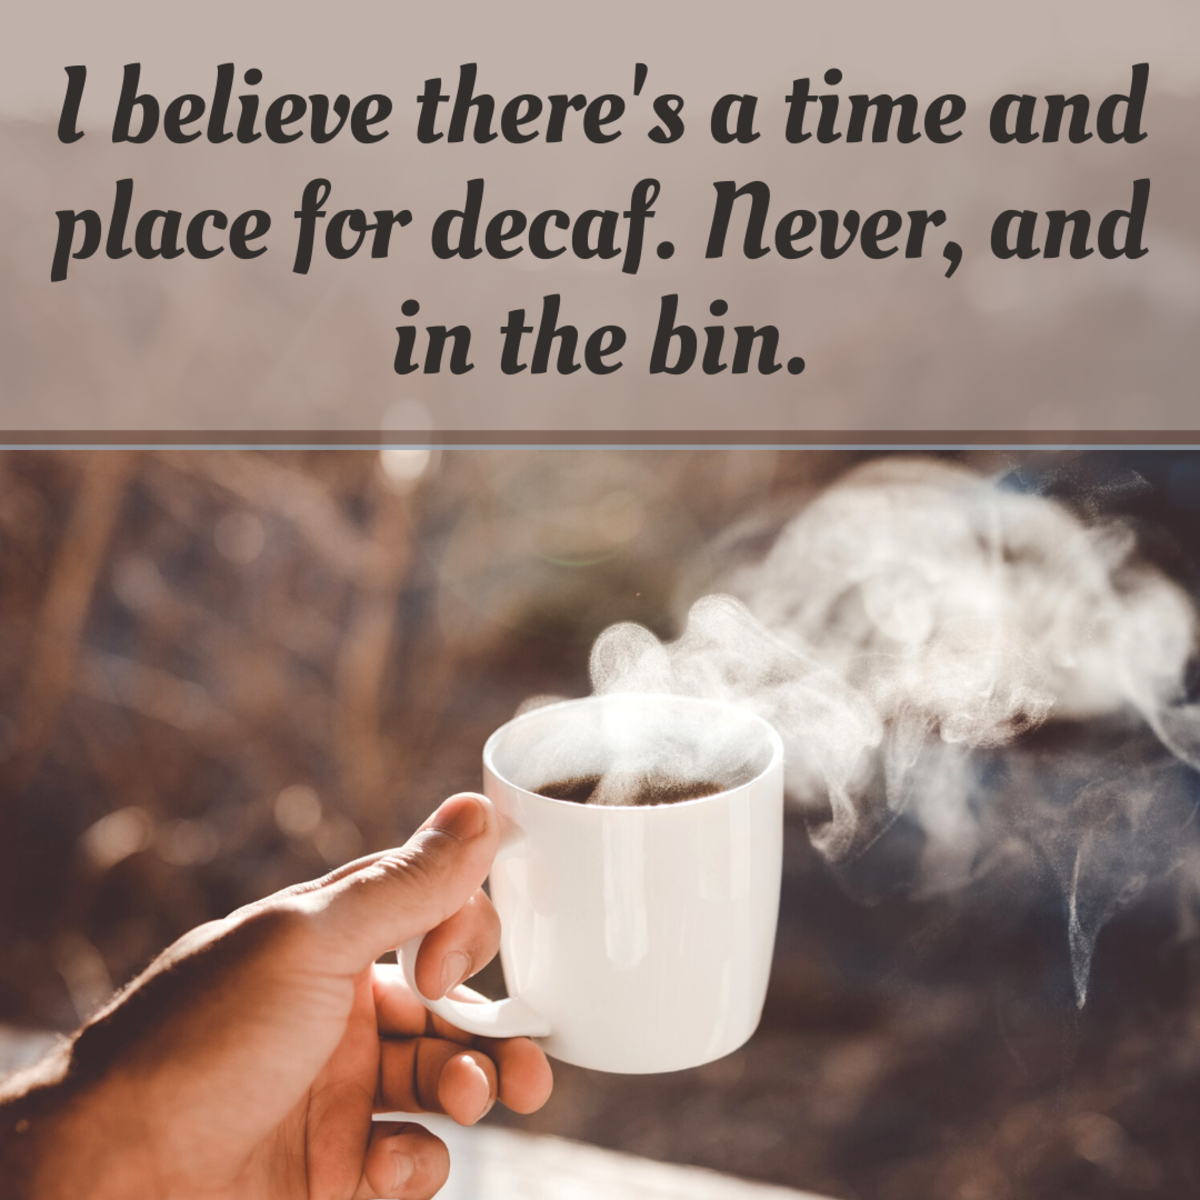 You might consider a good dig at decaf lovers!